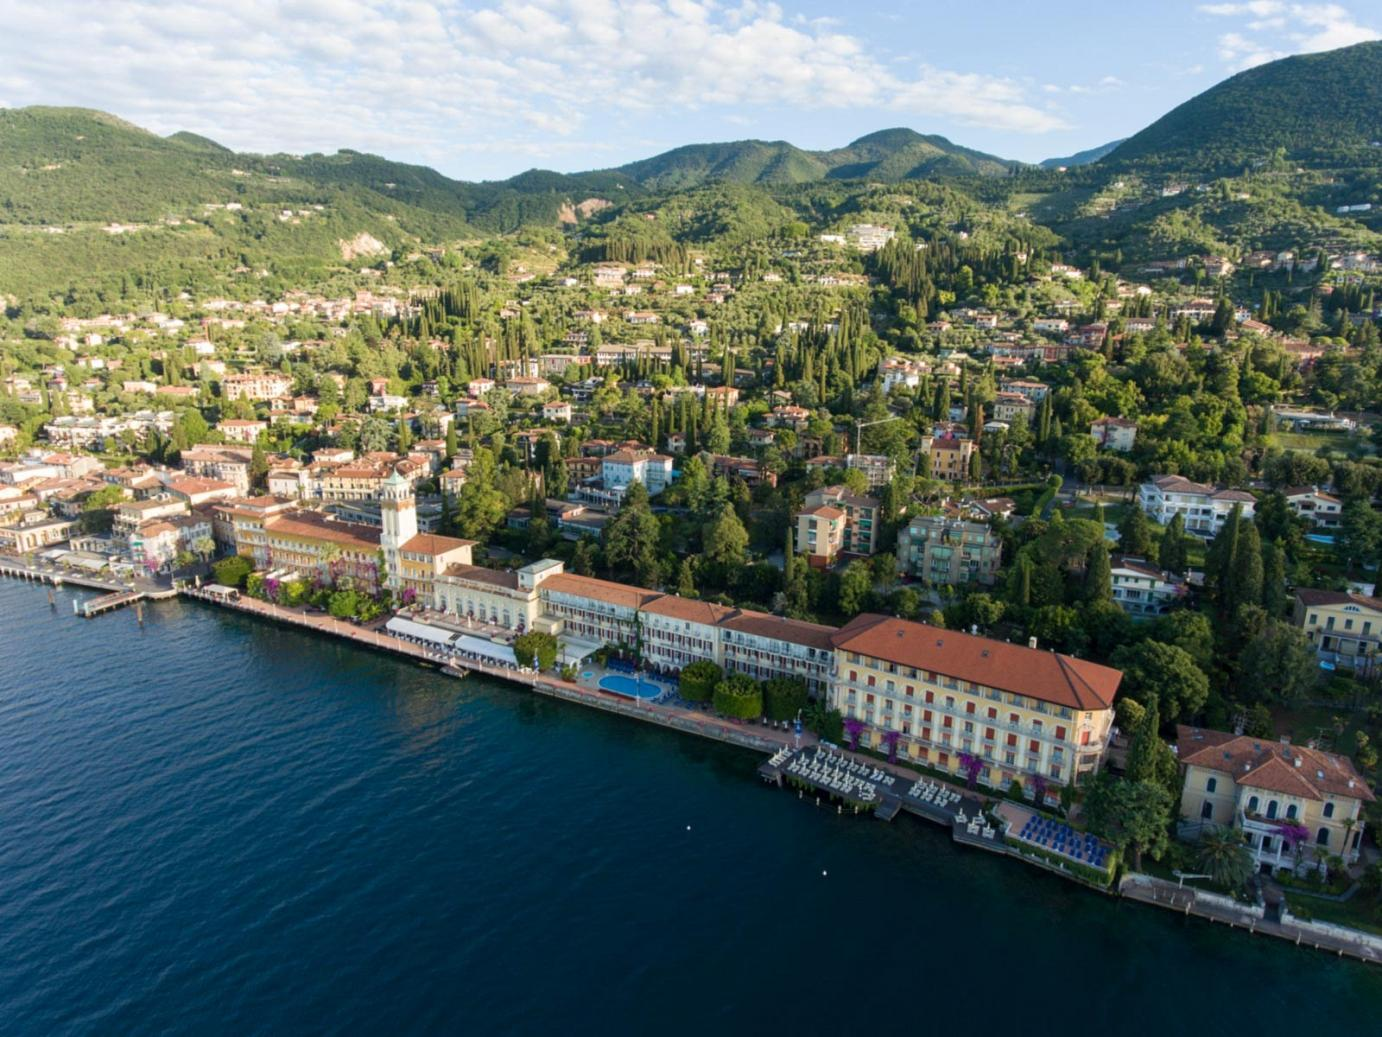 Bocchio Solutions - Hotel Gardone<br>Restructuring Hotel on Lake Garda